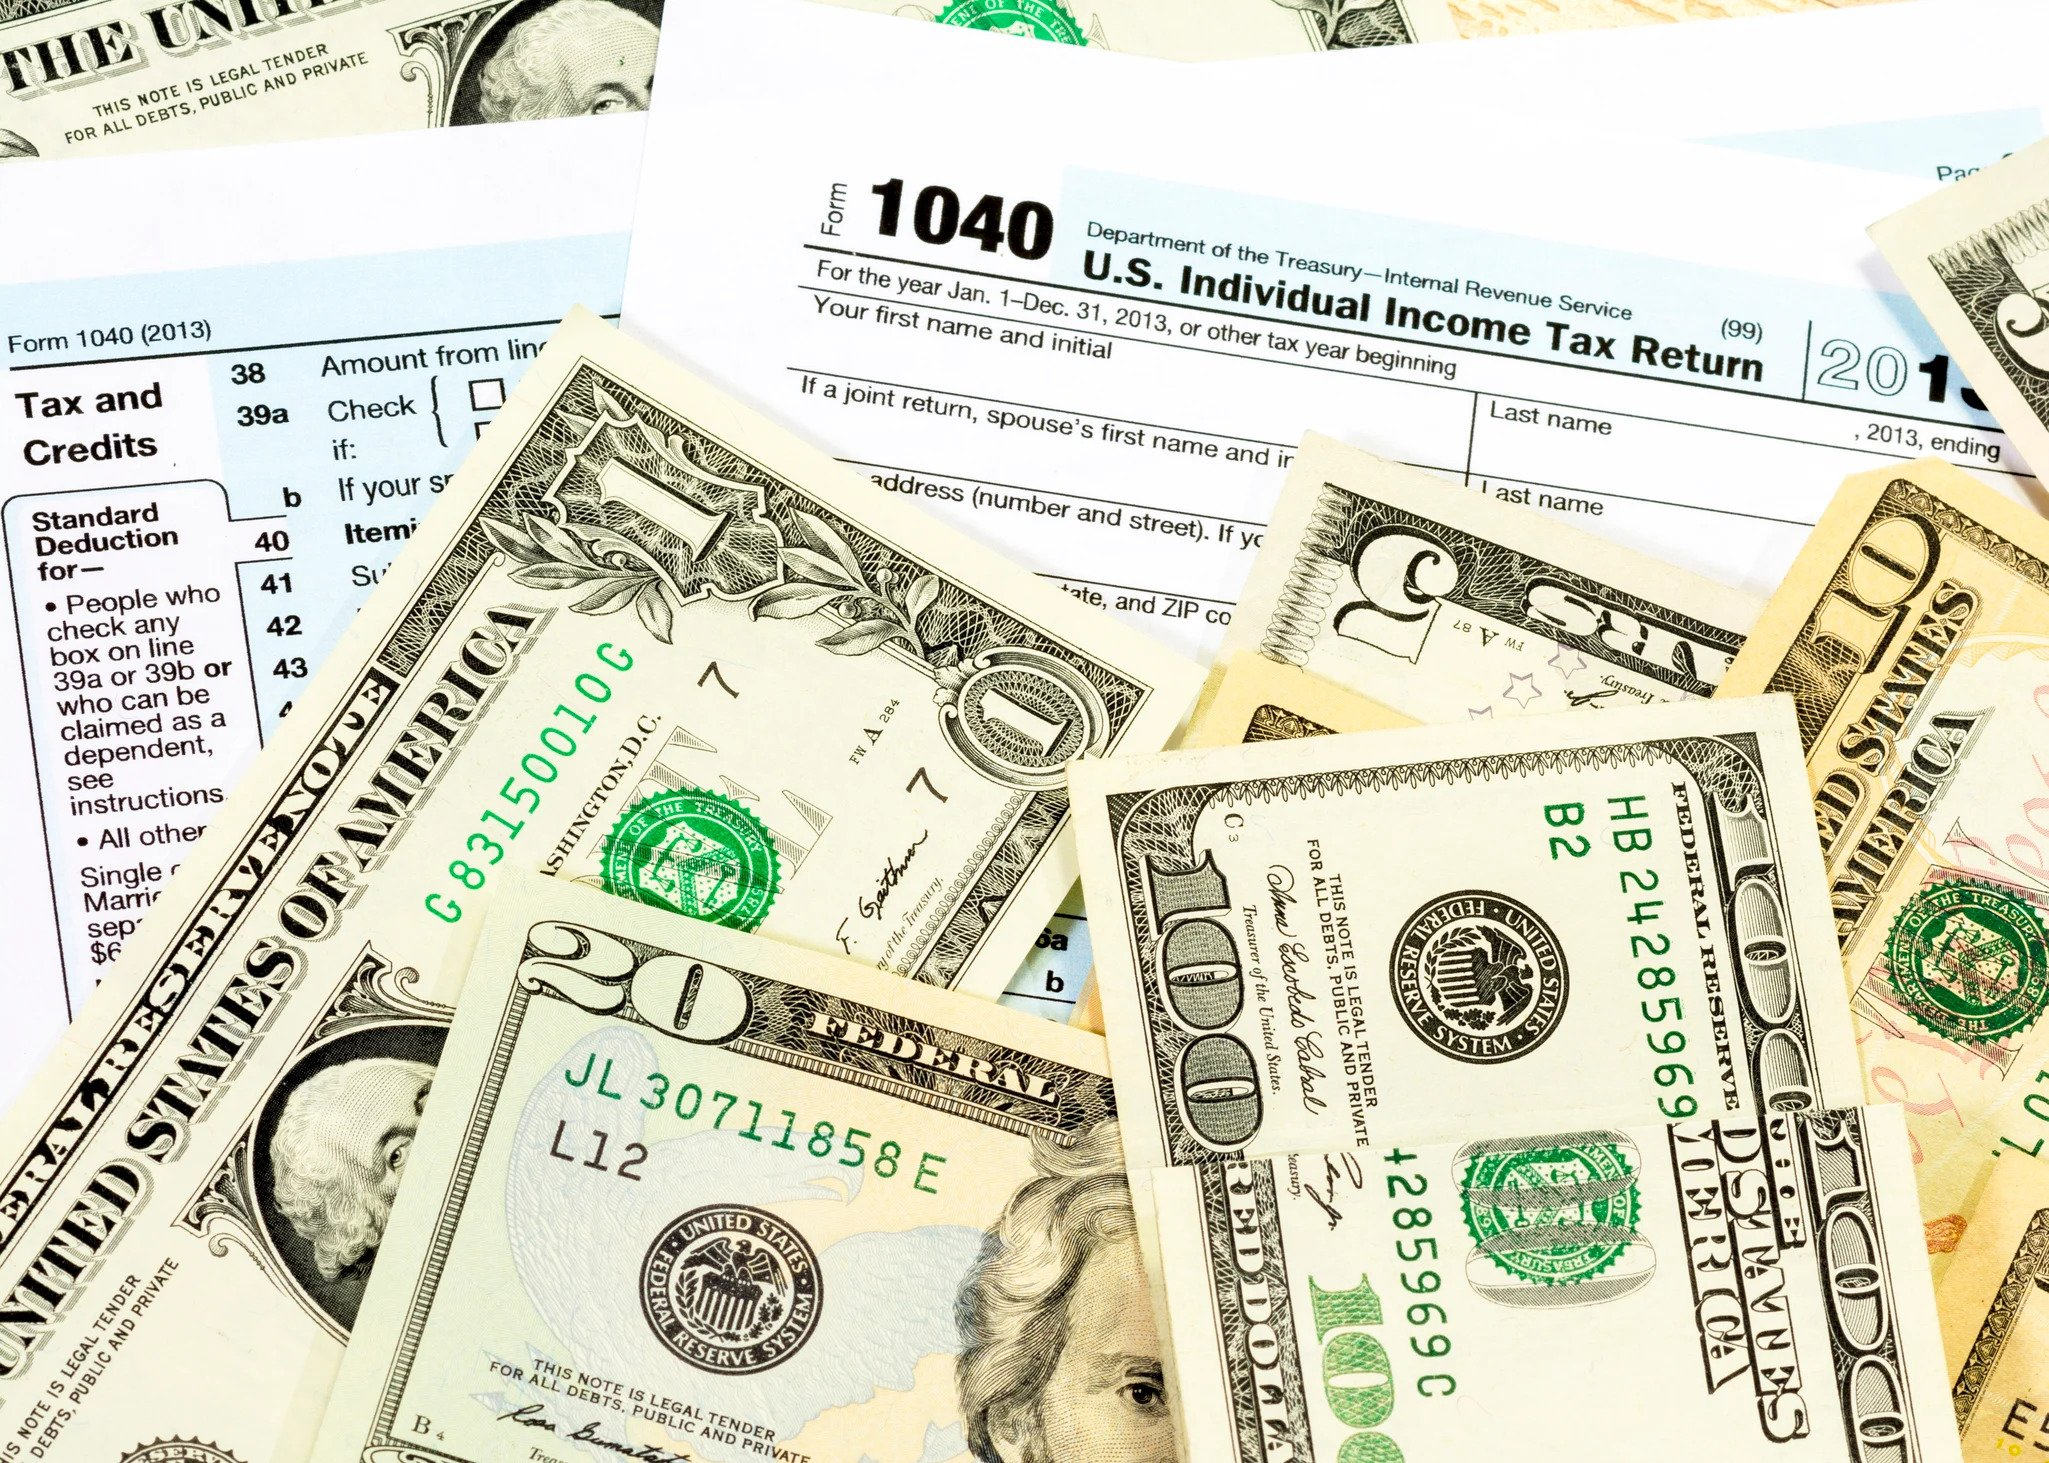 Pay Retirement Taxes Now or Later? The Right Answer Could Save You a Bundle: An effective strategy for retirees and those saving for retirement.